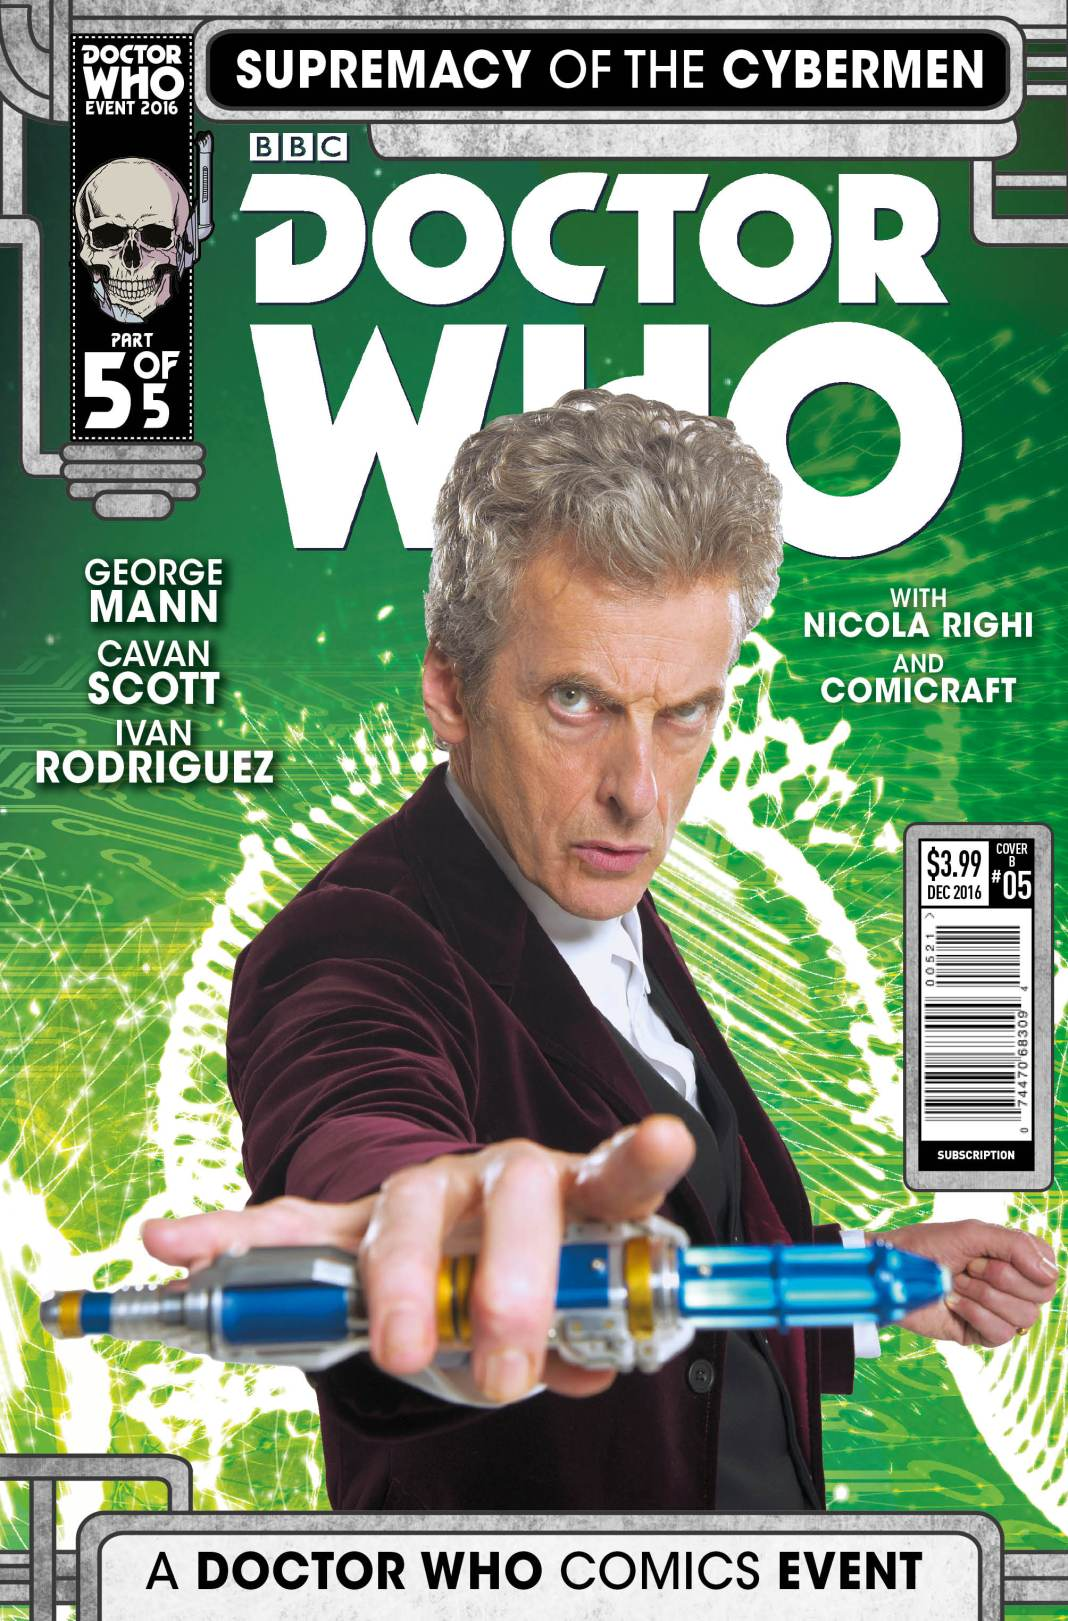 TITAN COMICS - DOCTOR WHO: SUPREMACY OF THE CYBERMEN #5- Cover B Photo Variant